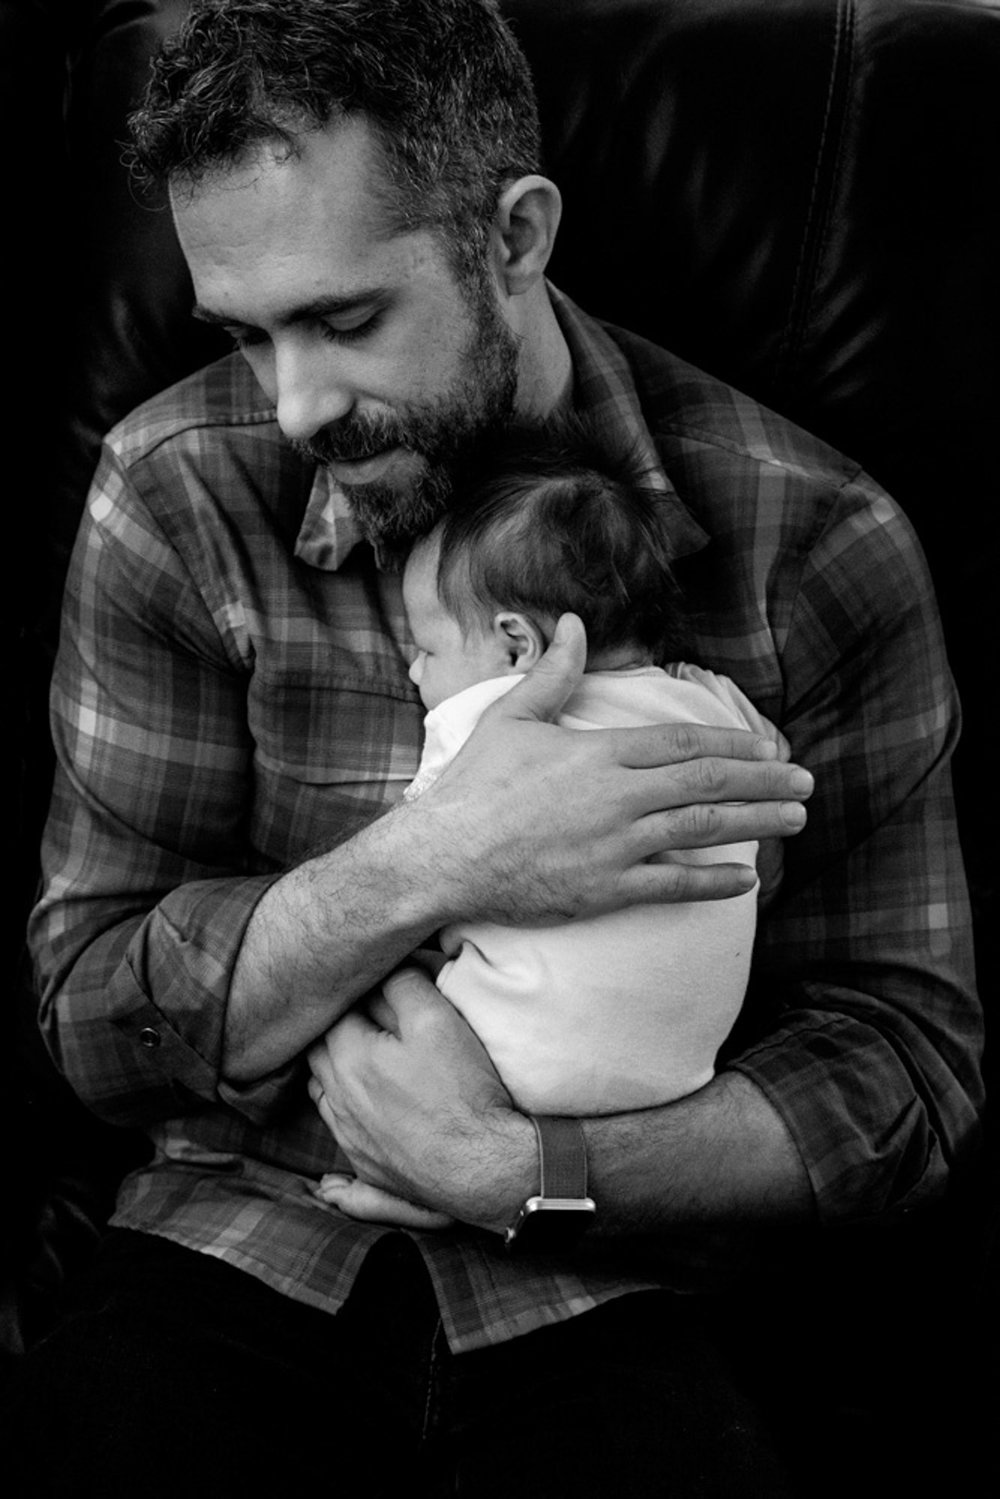 dad seated and snuggling newborn baby in black and white